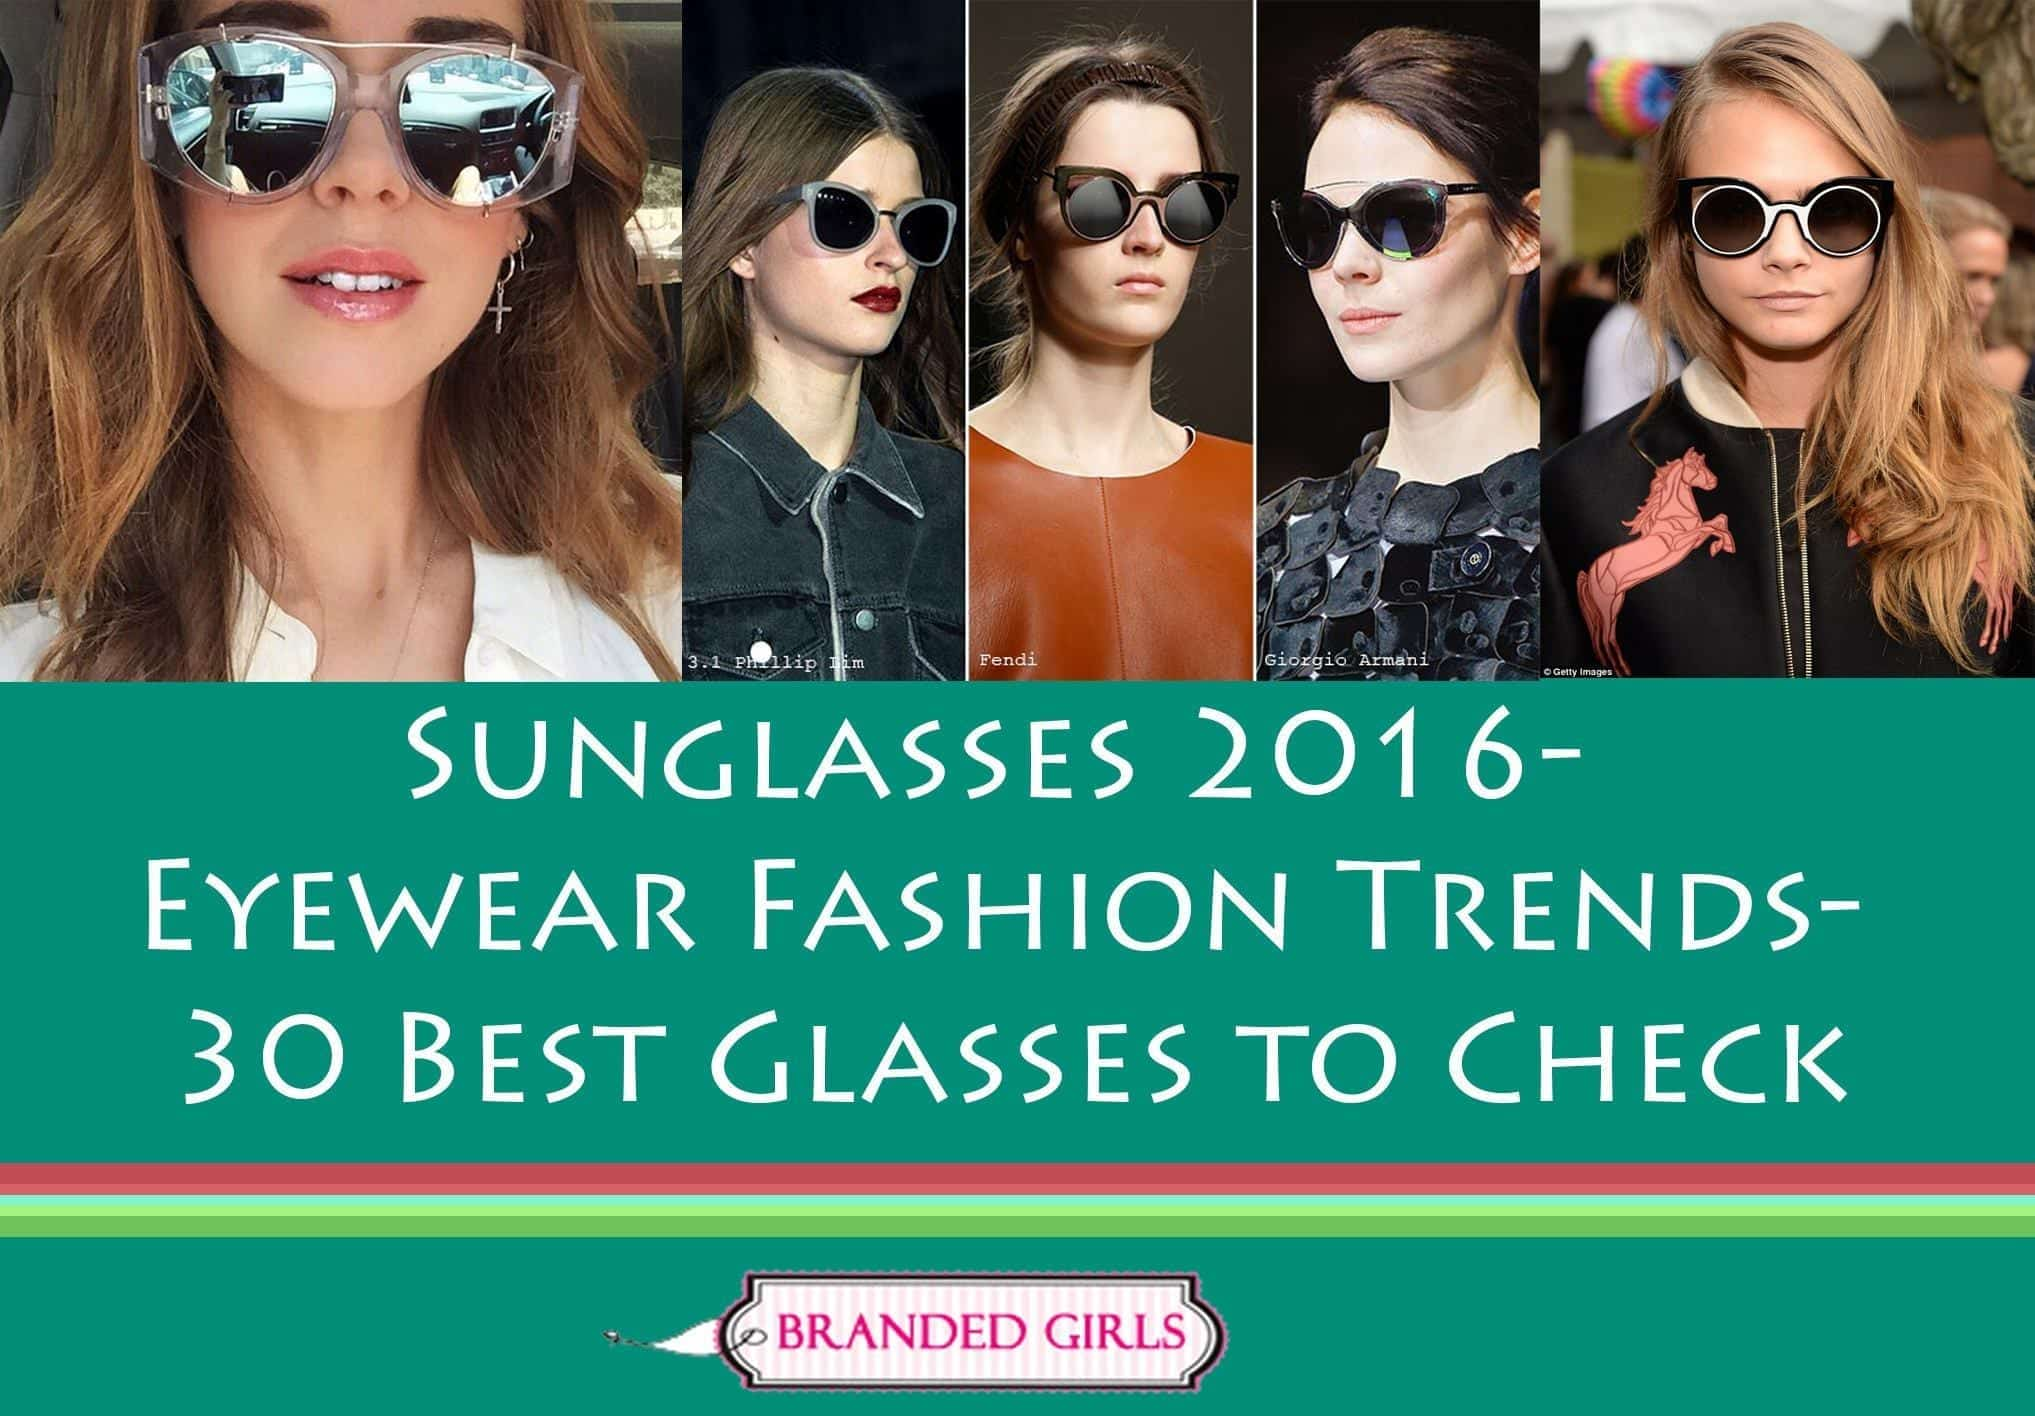 Sunglasses-2016-Eyewaear-Fashion-Trends-30-Best-Glasses-to-Check-2 Sunglasses 2016-Eye-wear Fashion Trends 30 Best Glasses to Check